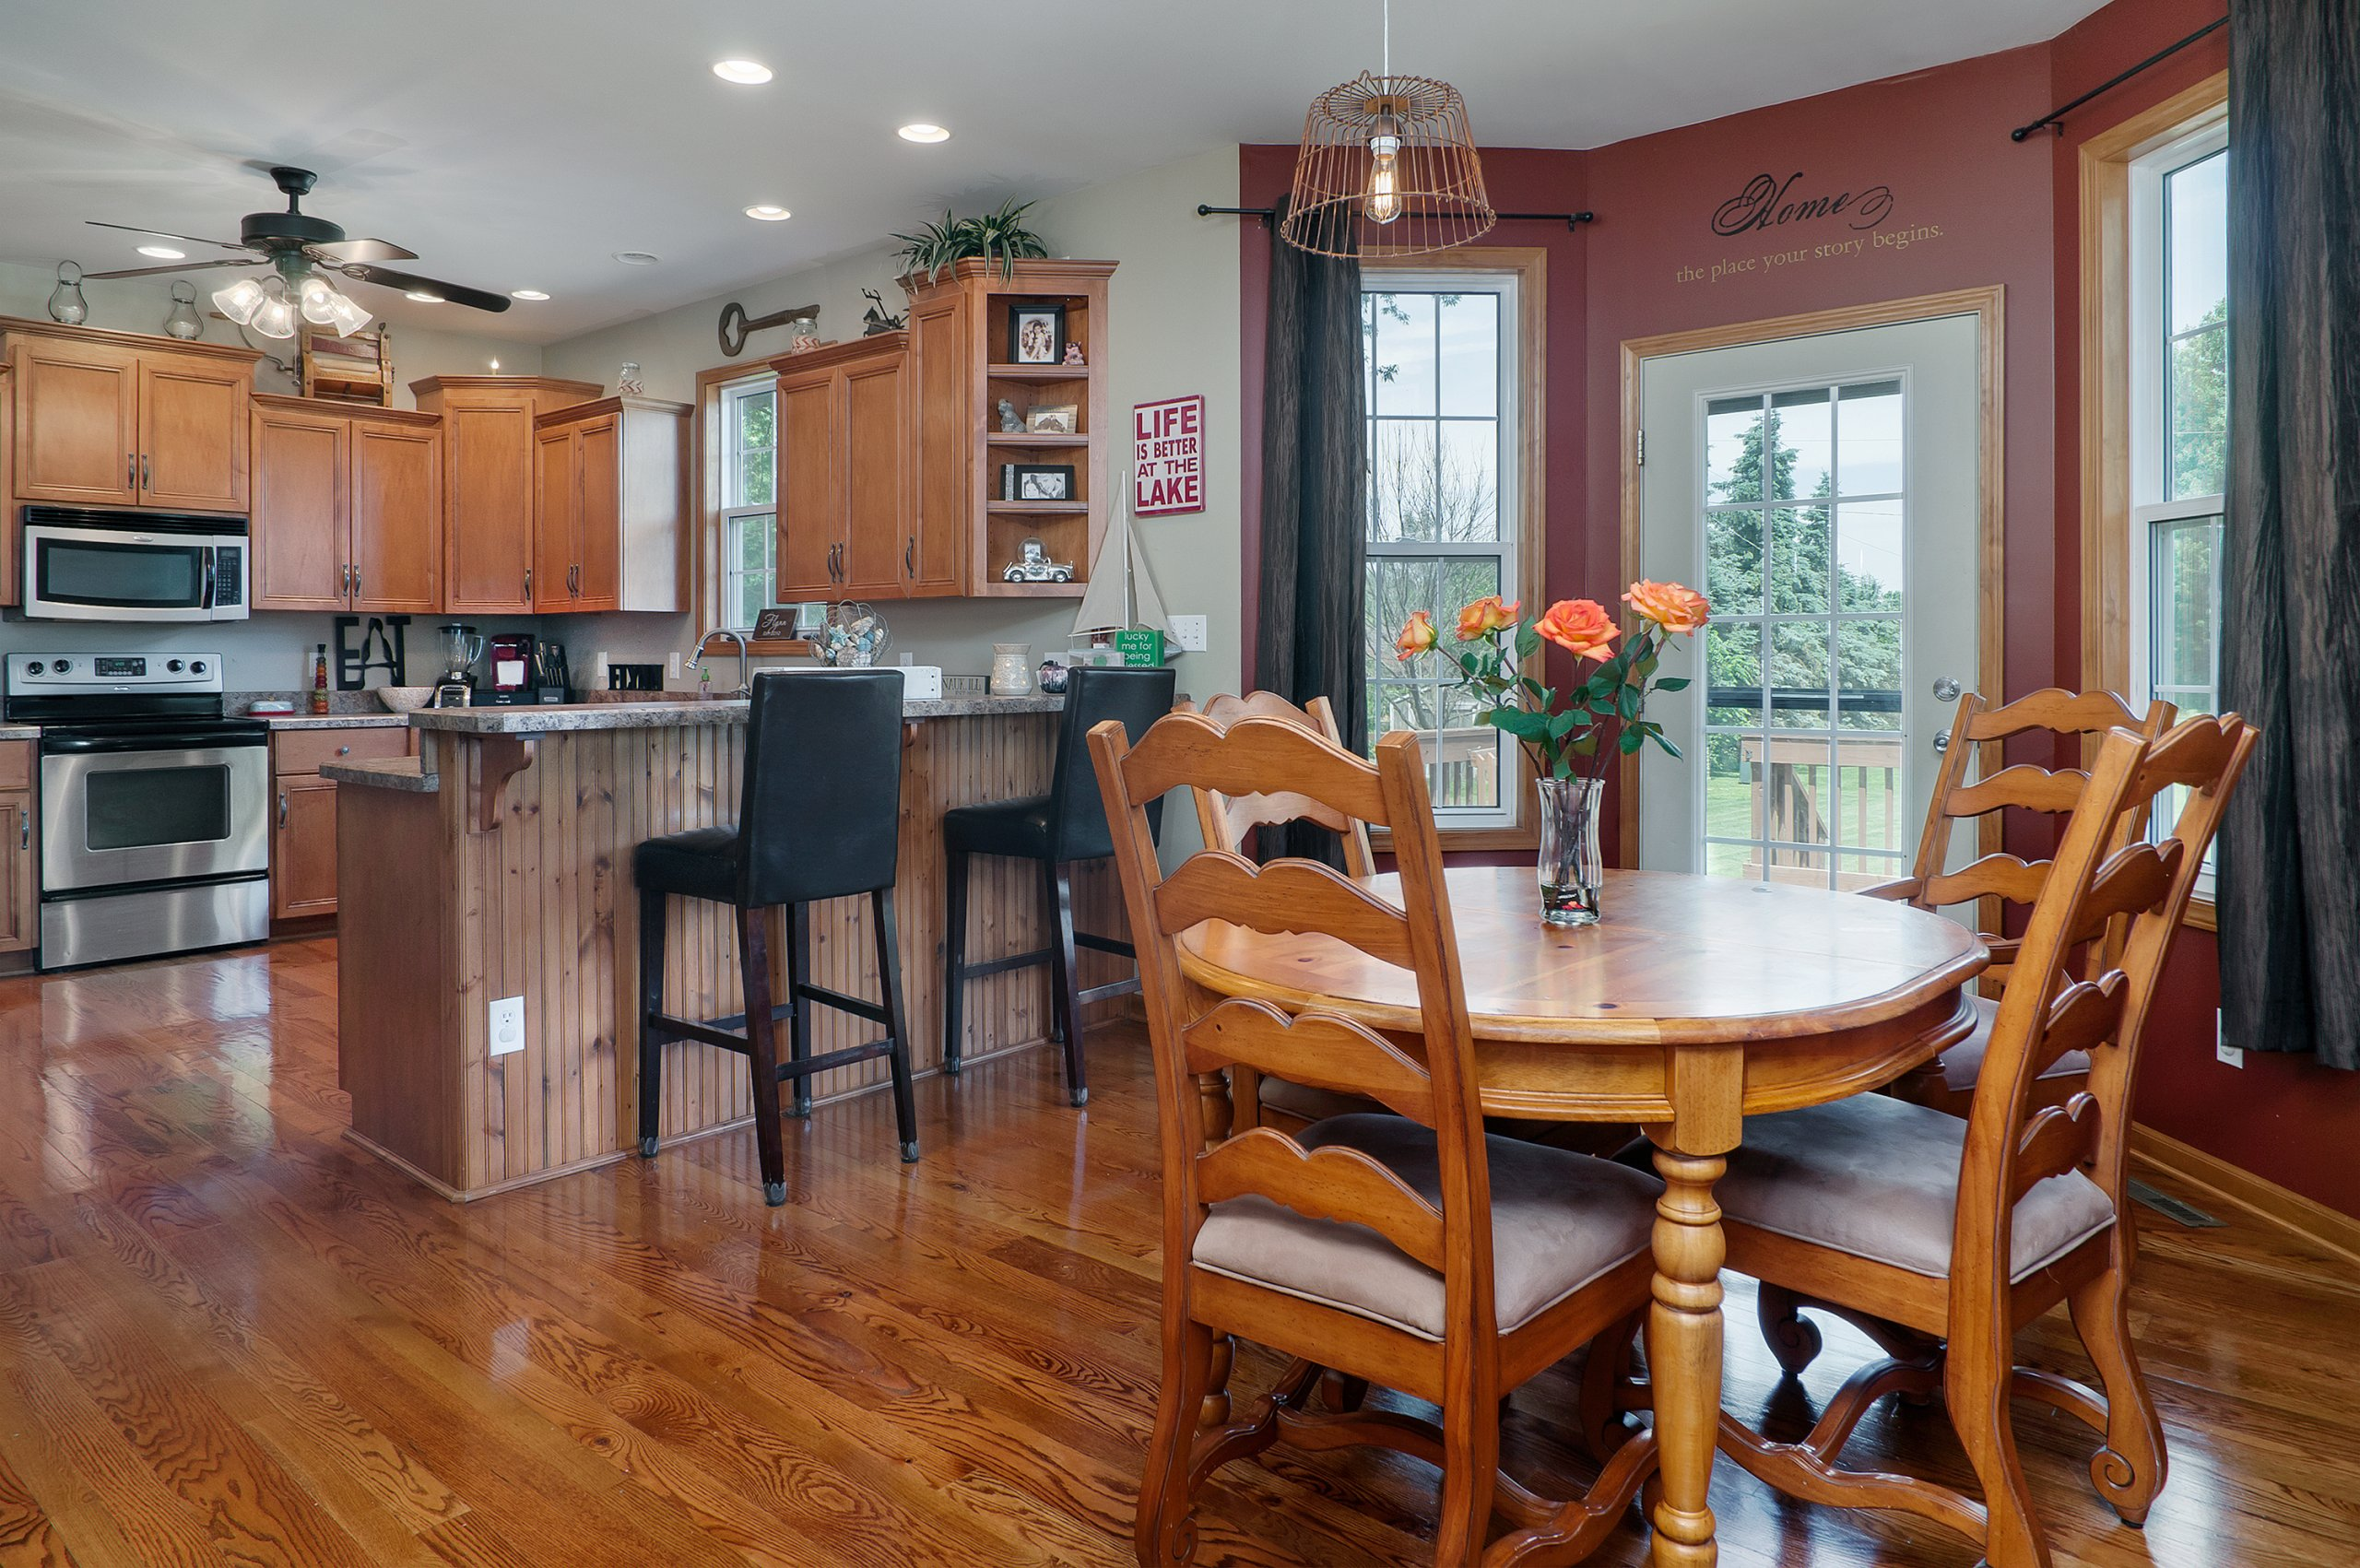 Spacious kitchen and dinette interior photography of Lake Holiday, IL home.